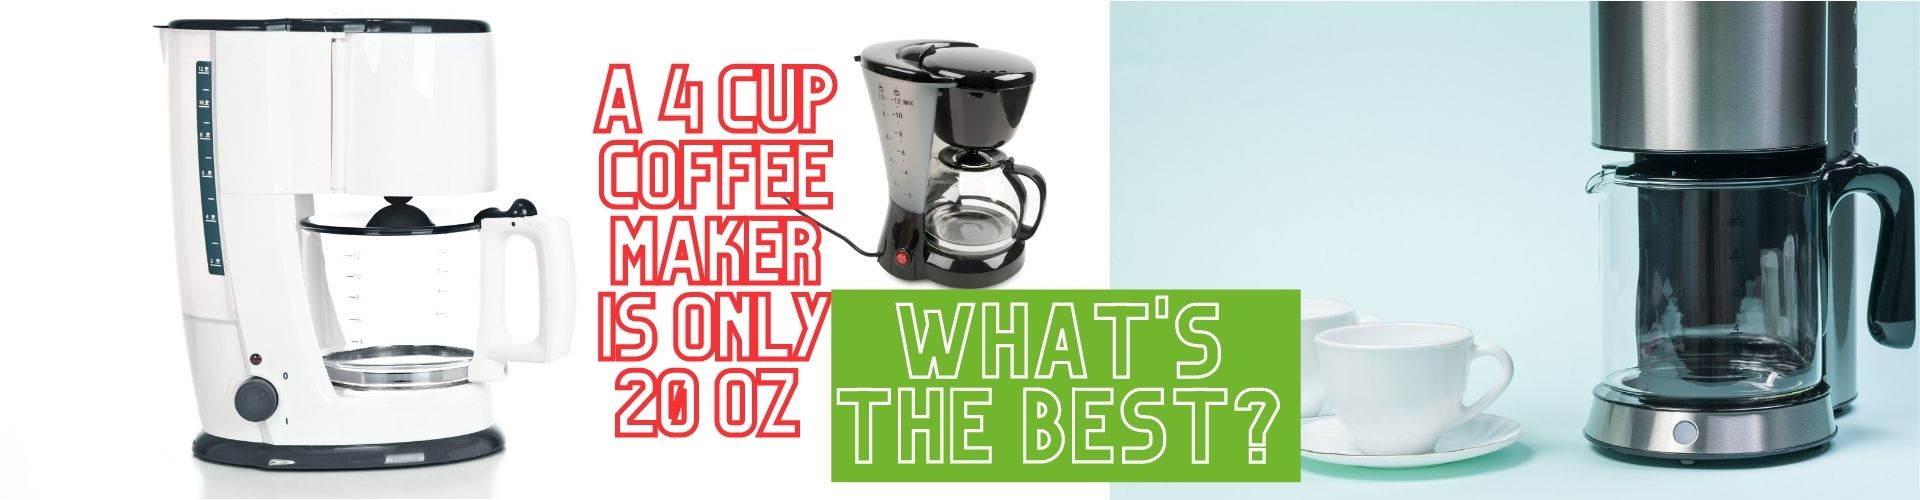 BCoC Banners 2020_best 4 cup coffee maker image